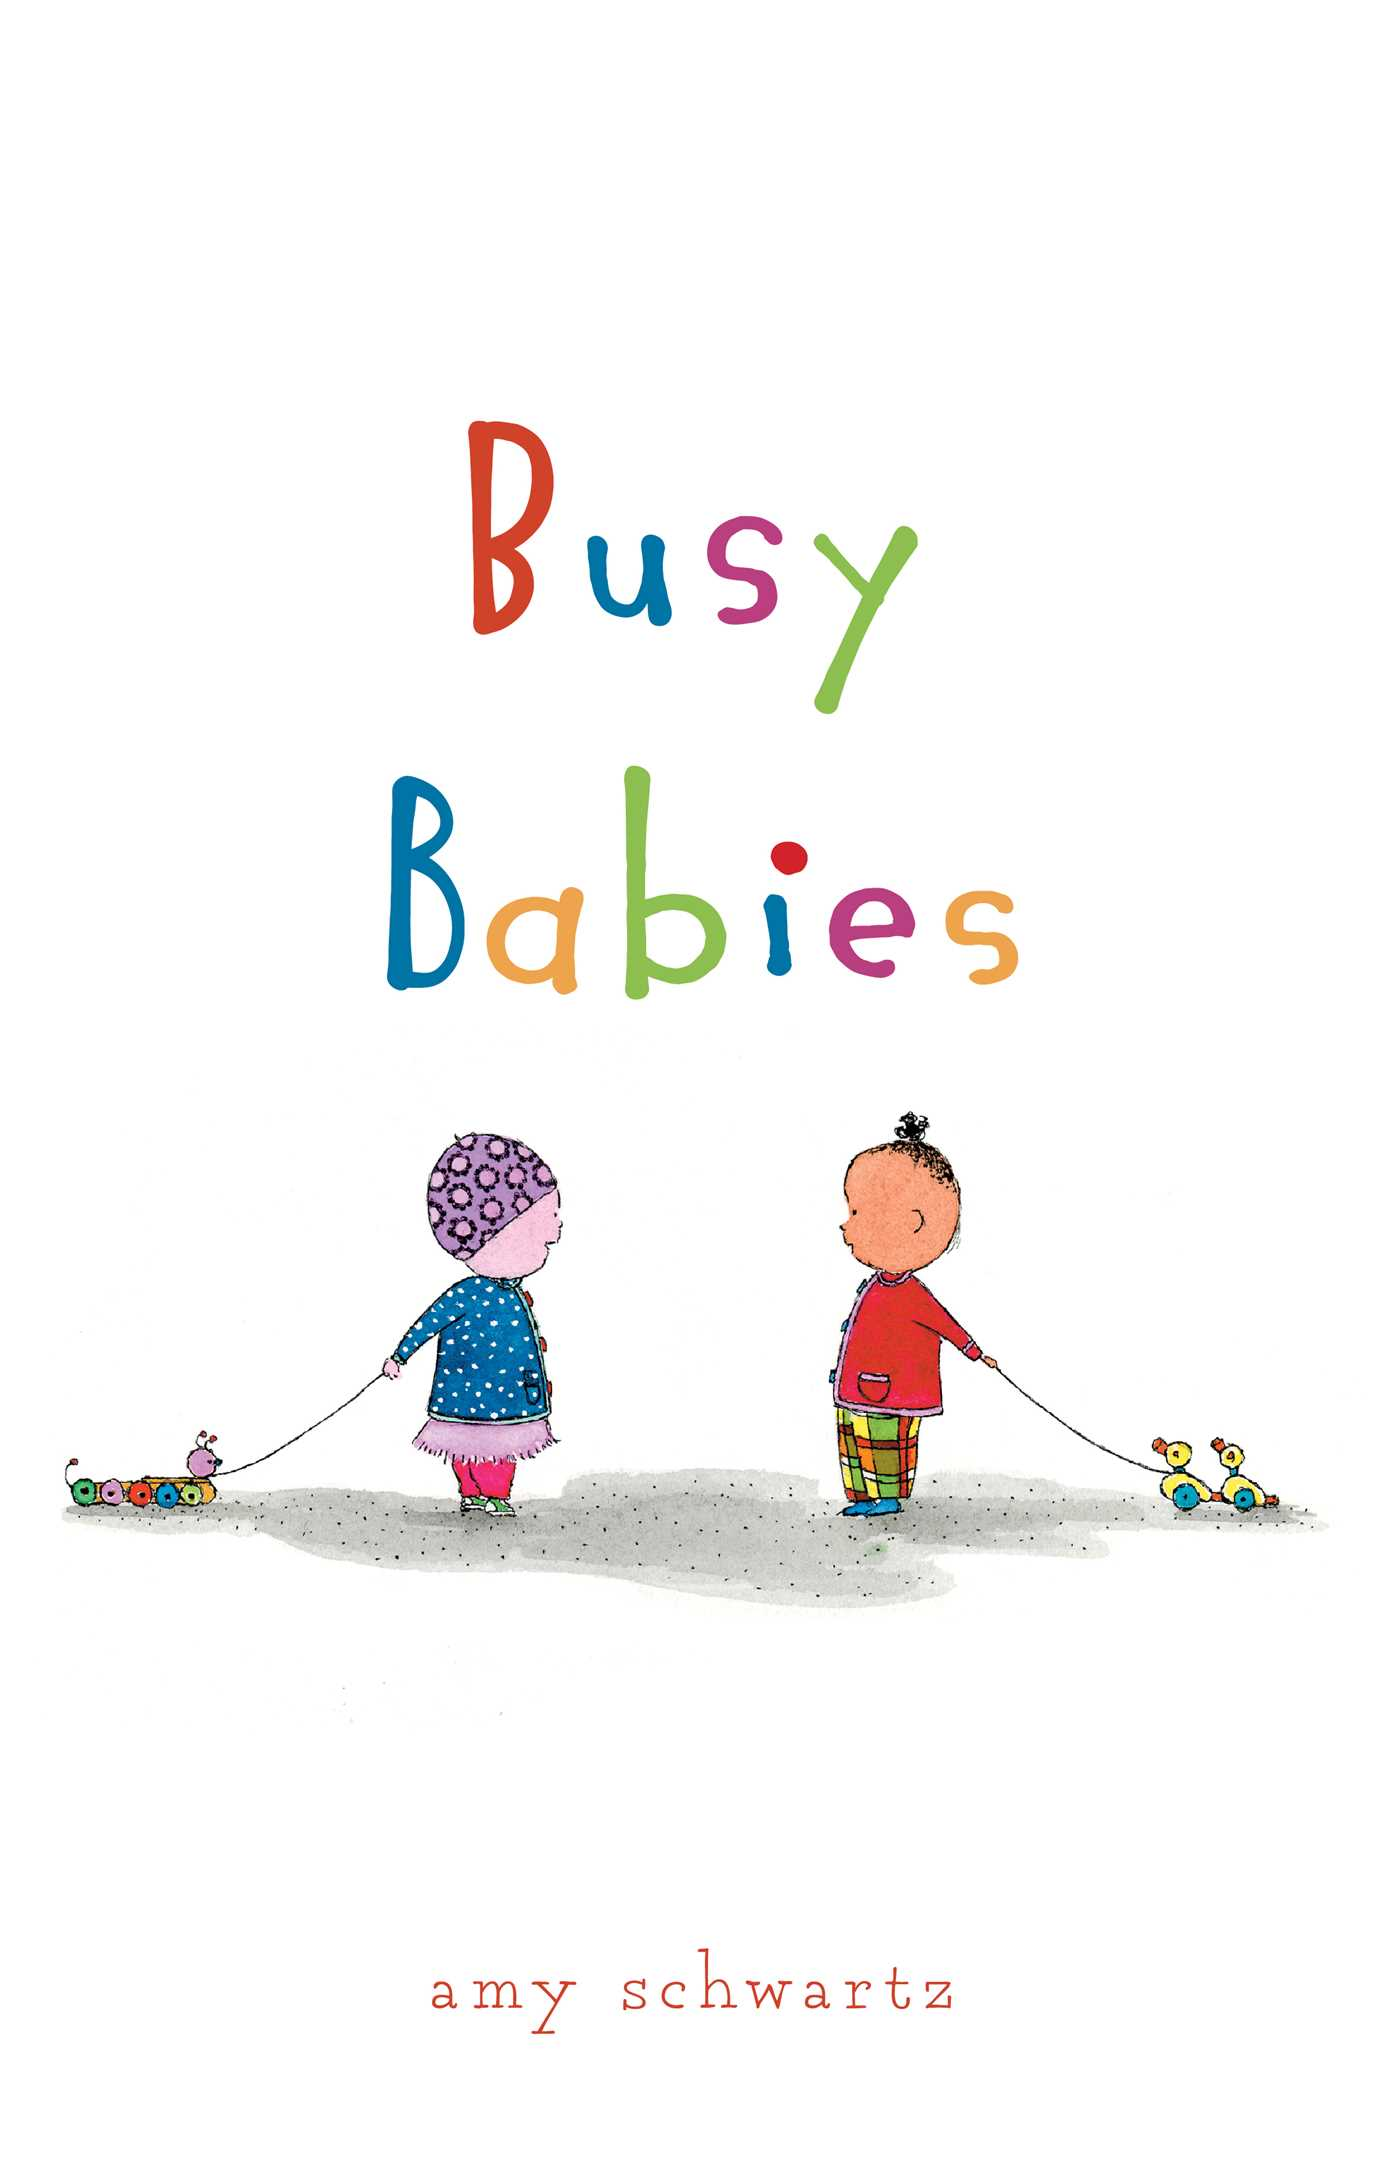 Busy babies 9781481445108 hr